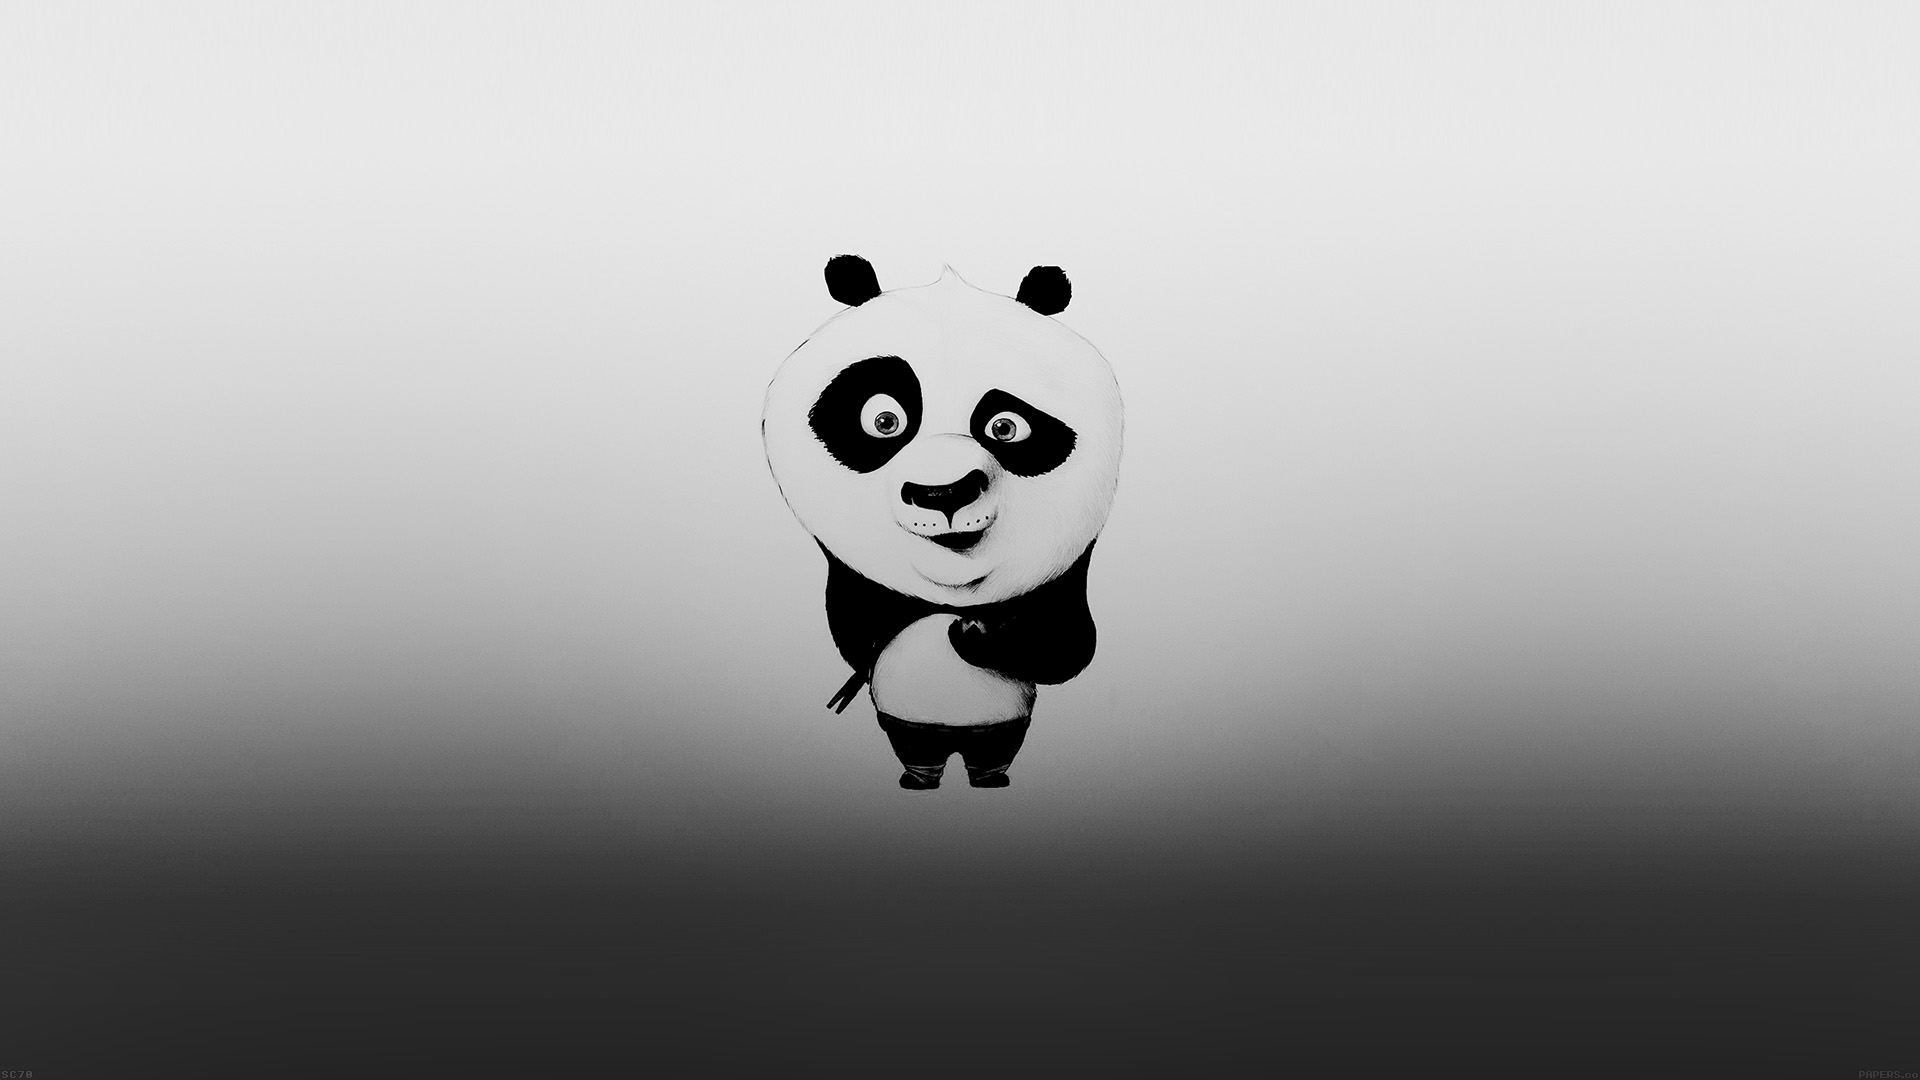 af59-kungfu-panda-minimal-funny-cute - papers.co